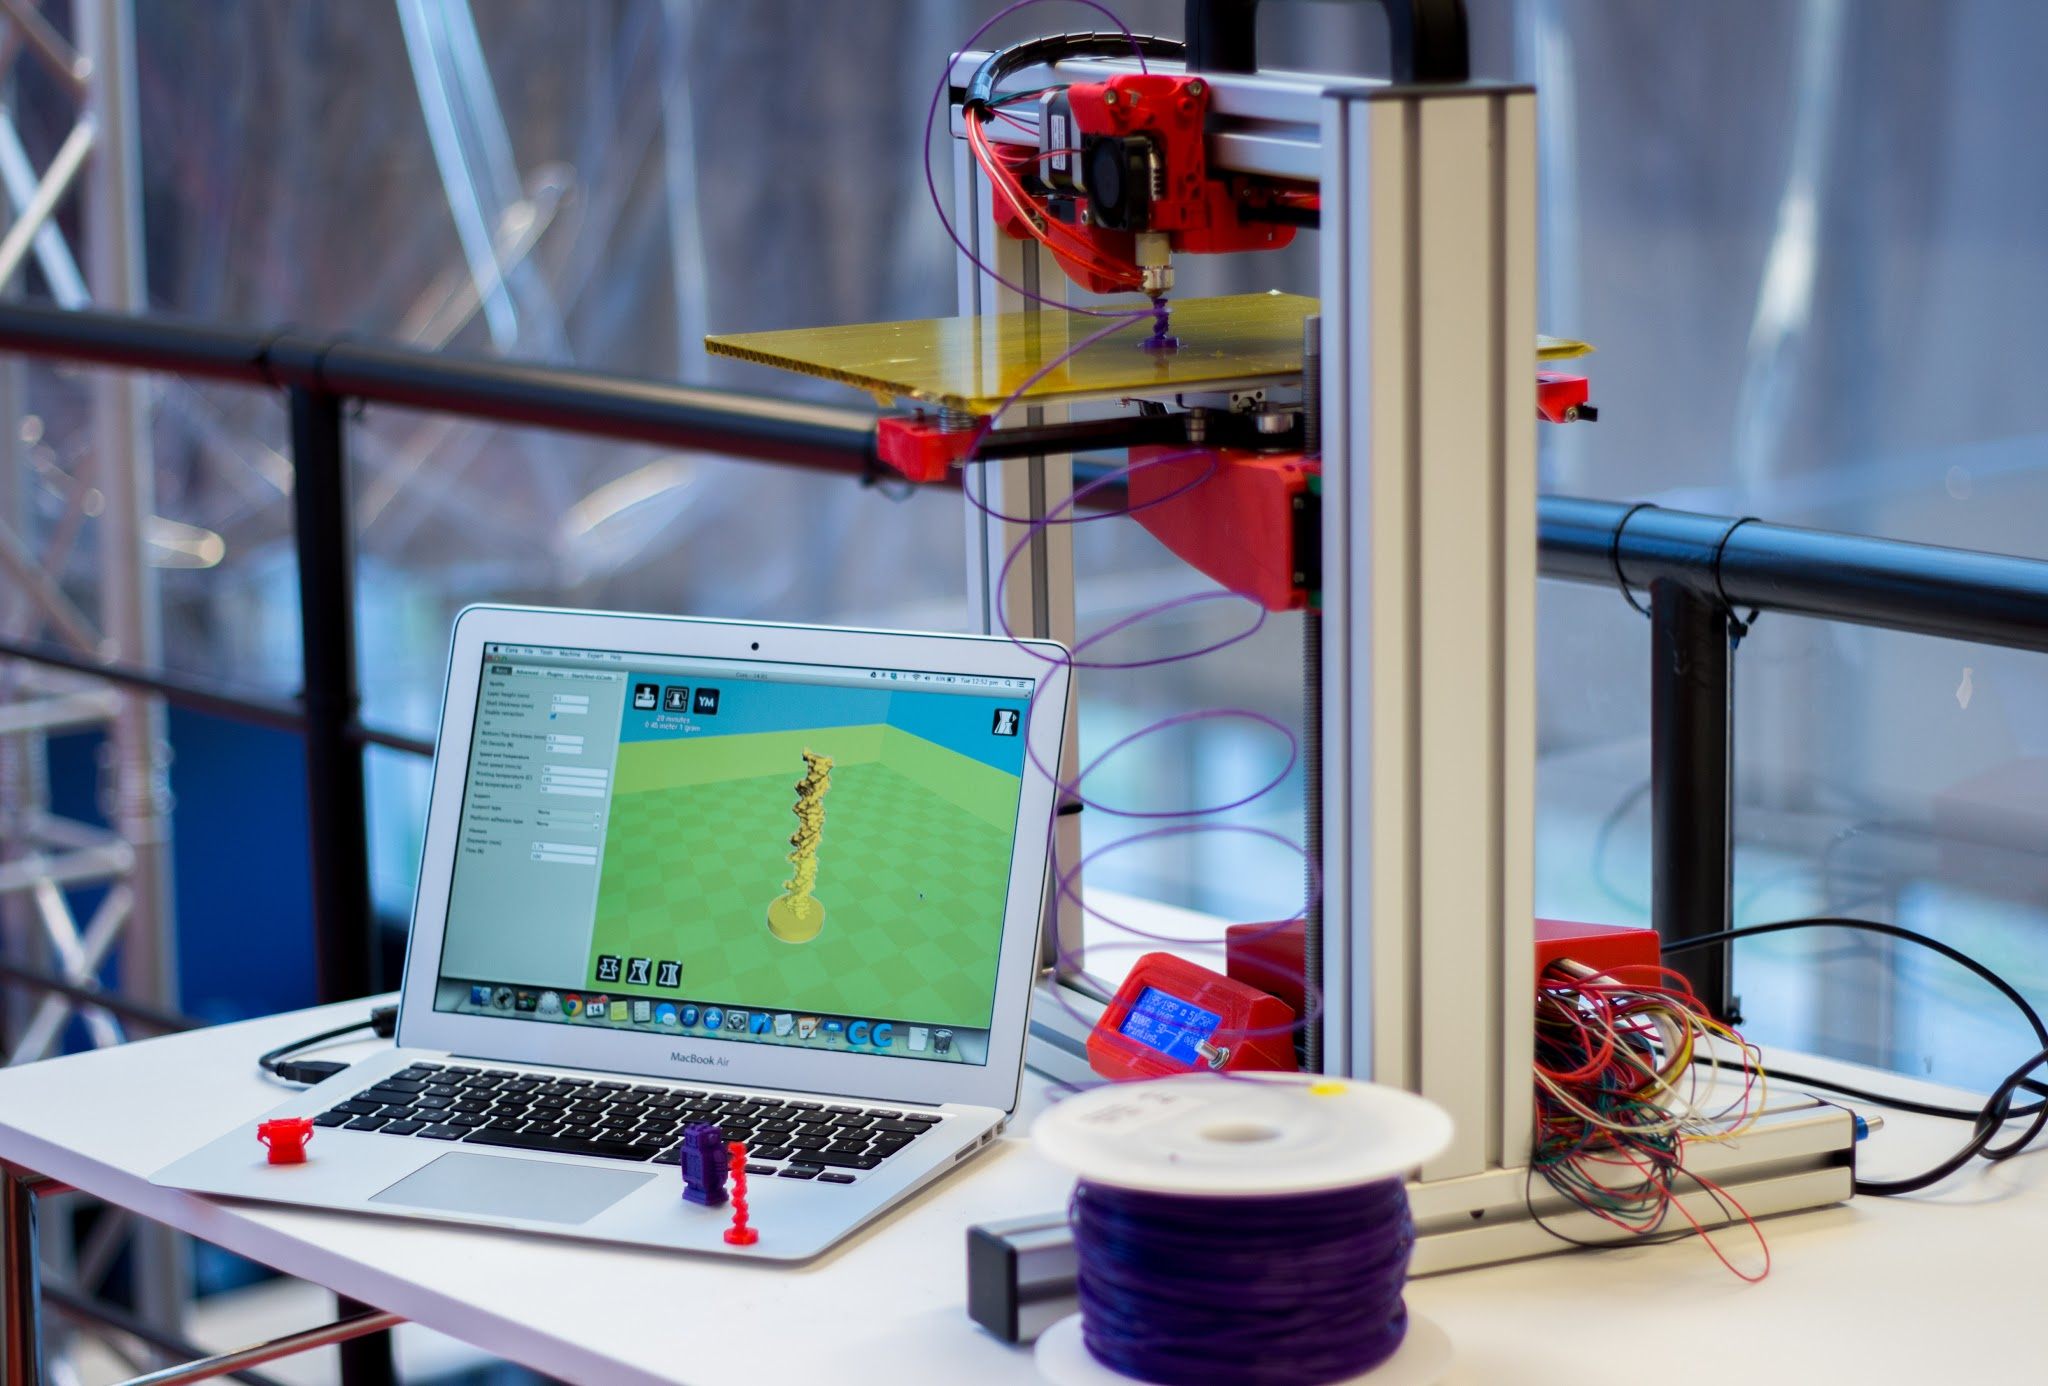 Felix_3D_Printer_-_Printing_Set-up_With_Examples.JPG